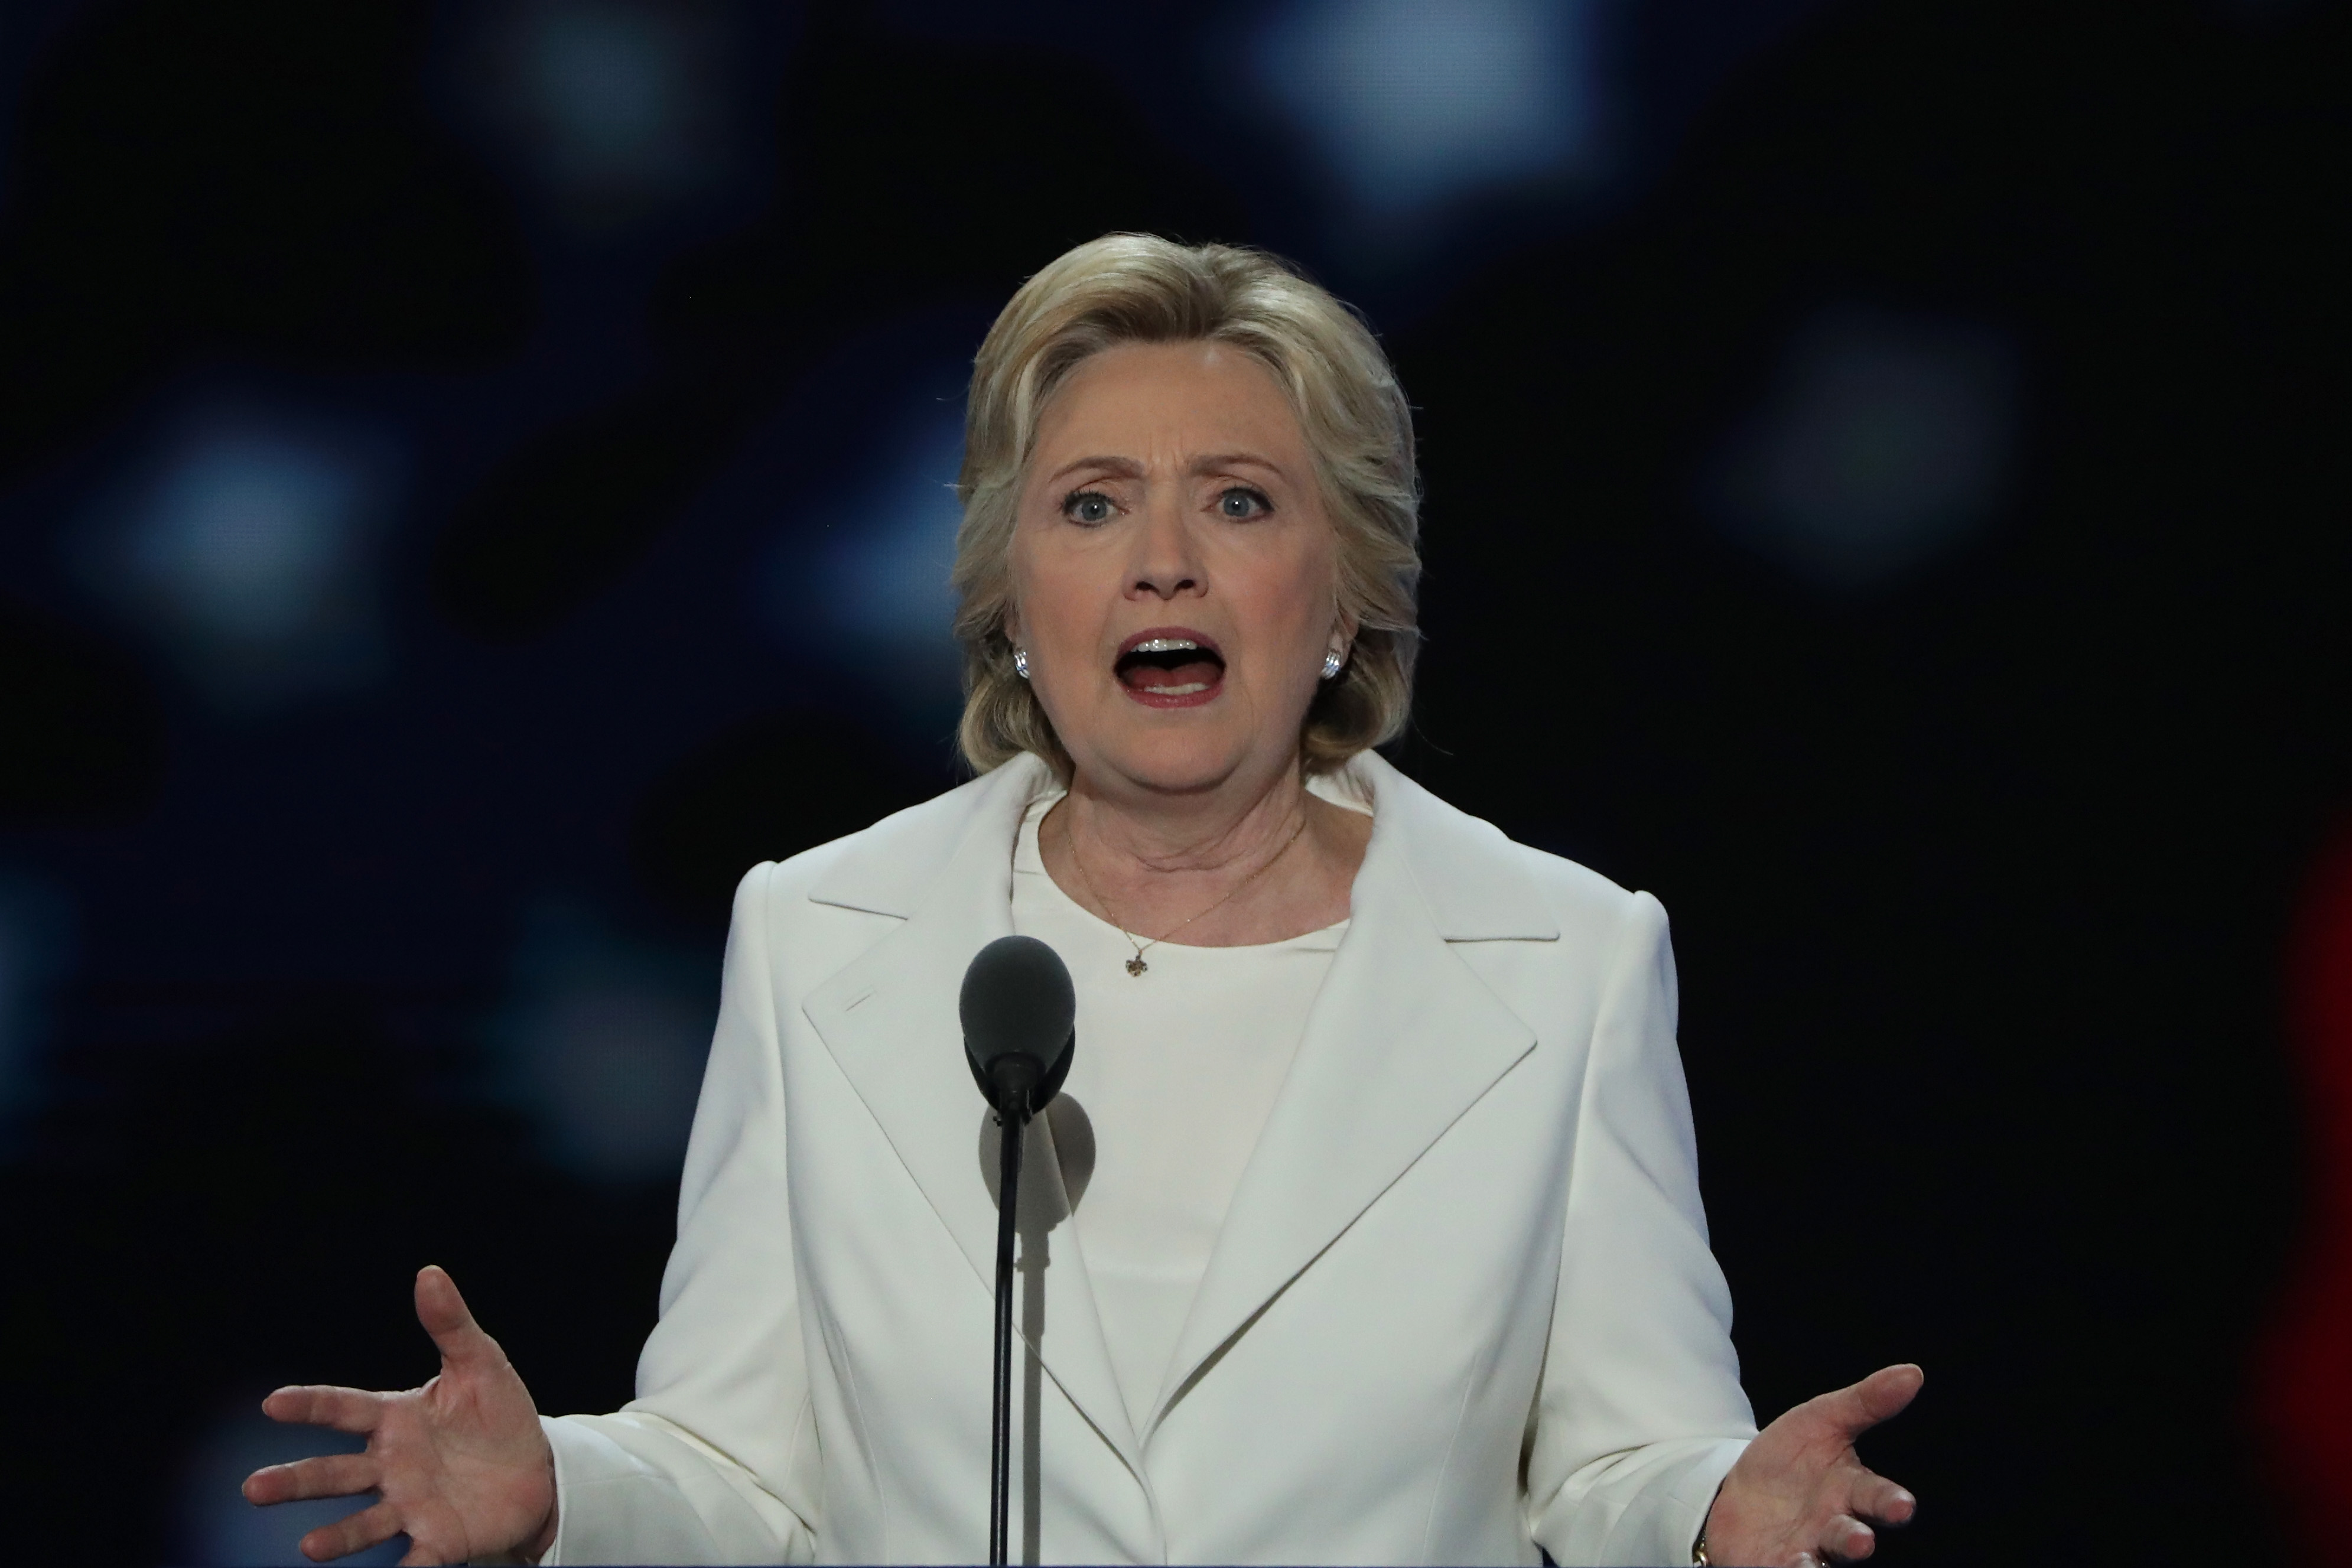 Hillary Clinton at the Democratic convention.